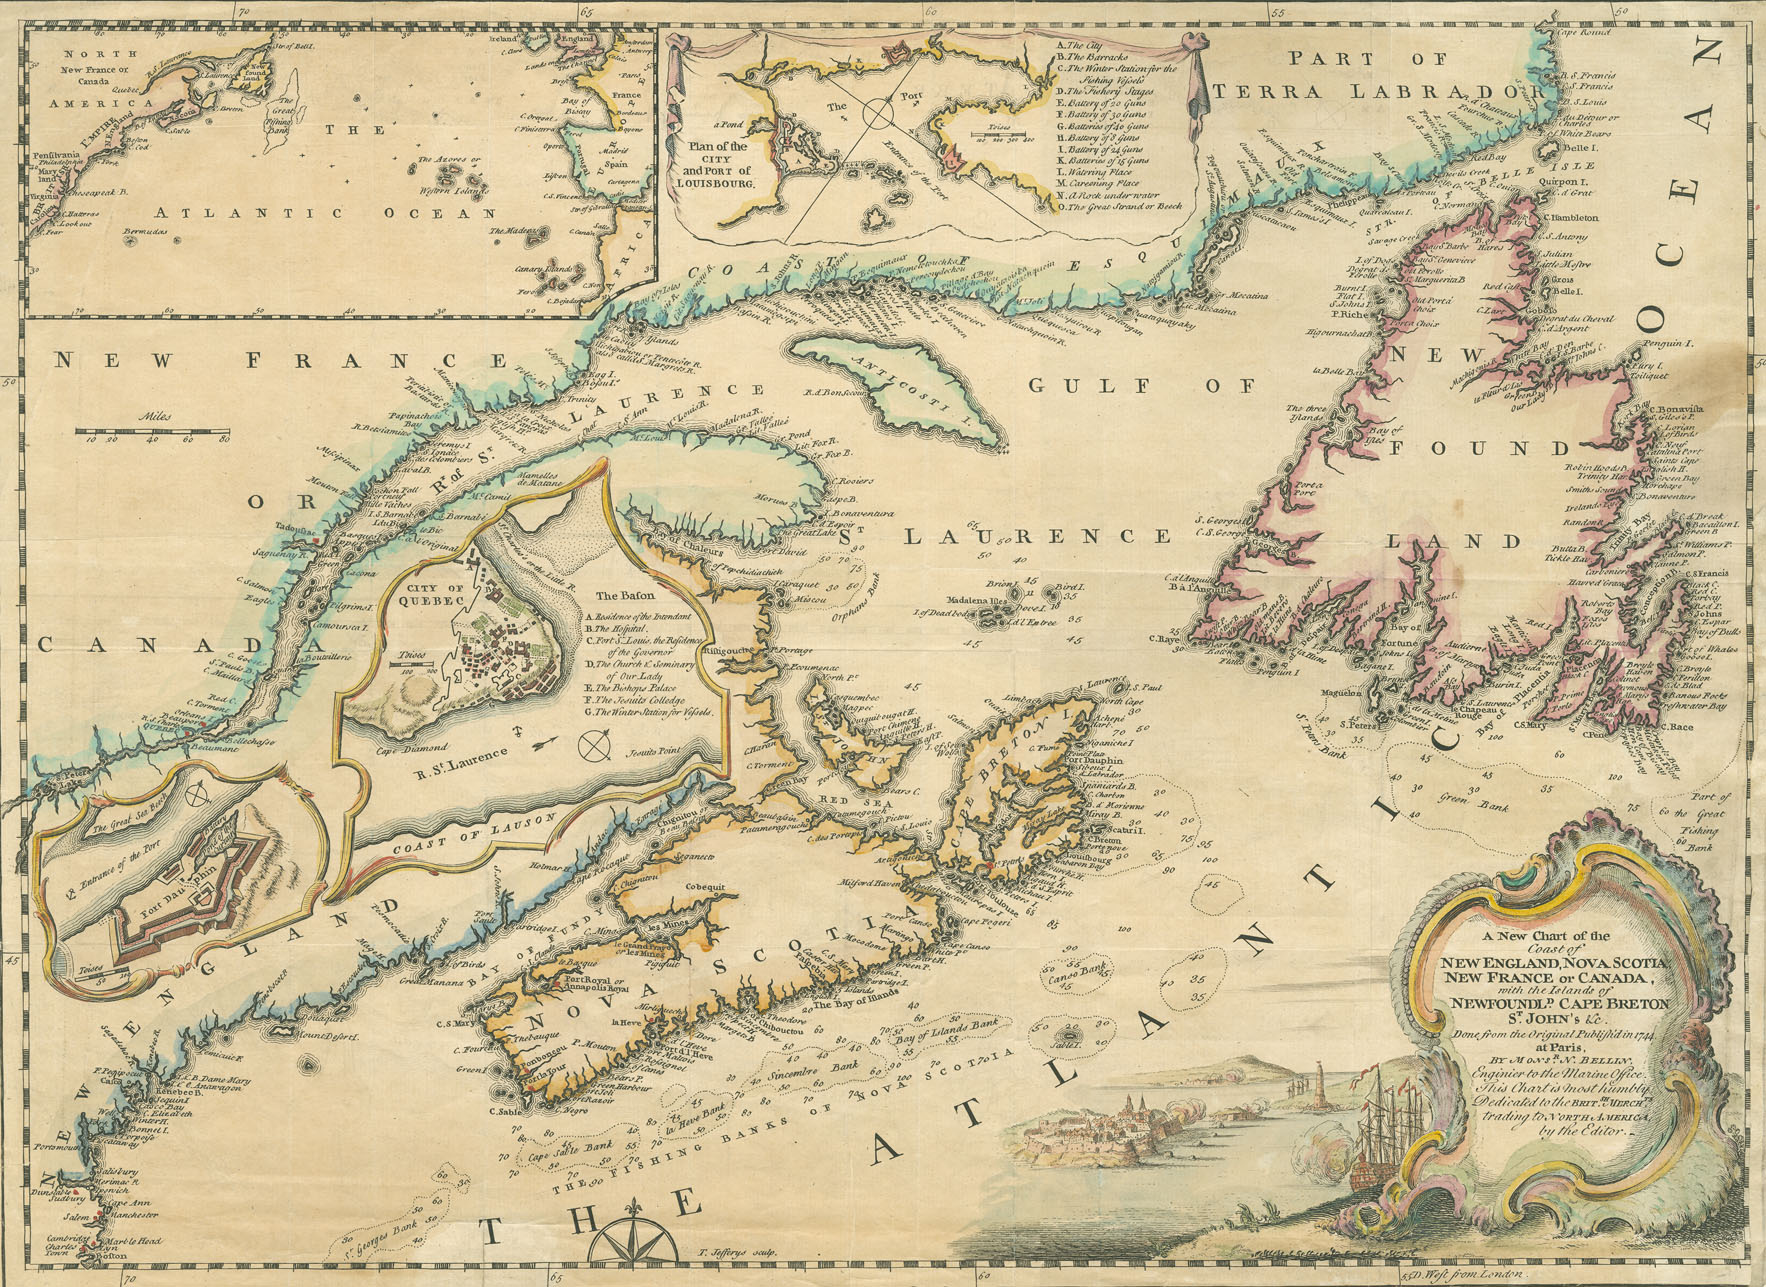 Nova Scotia Archives Historical Maps of Nova Scotia